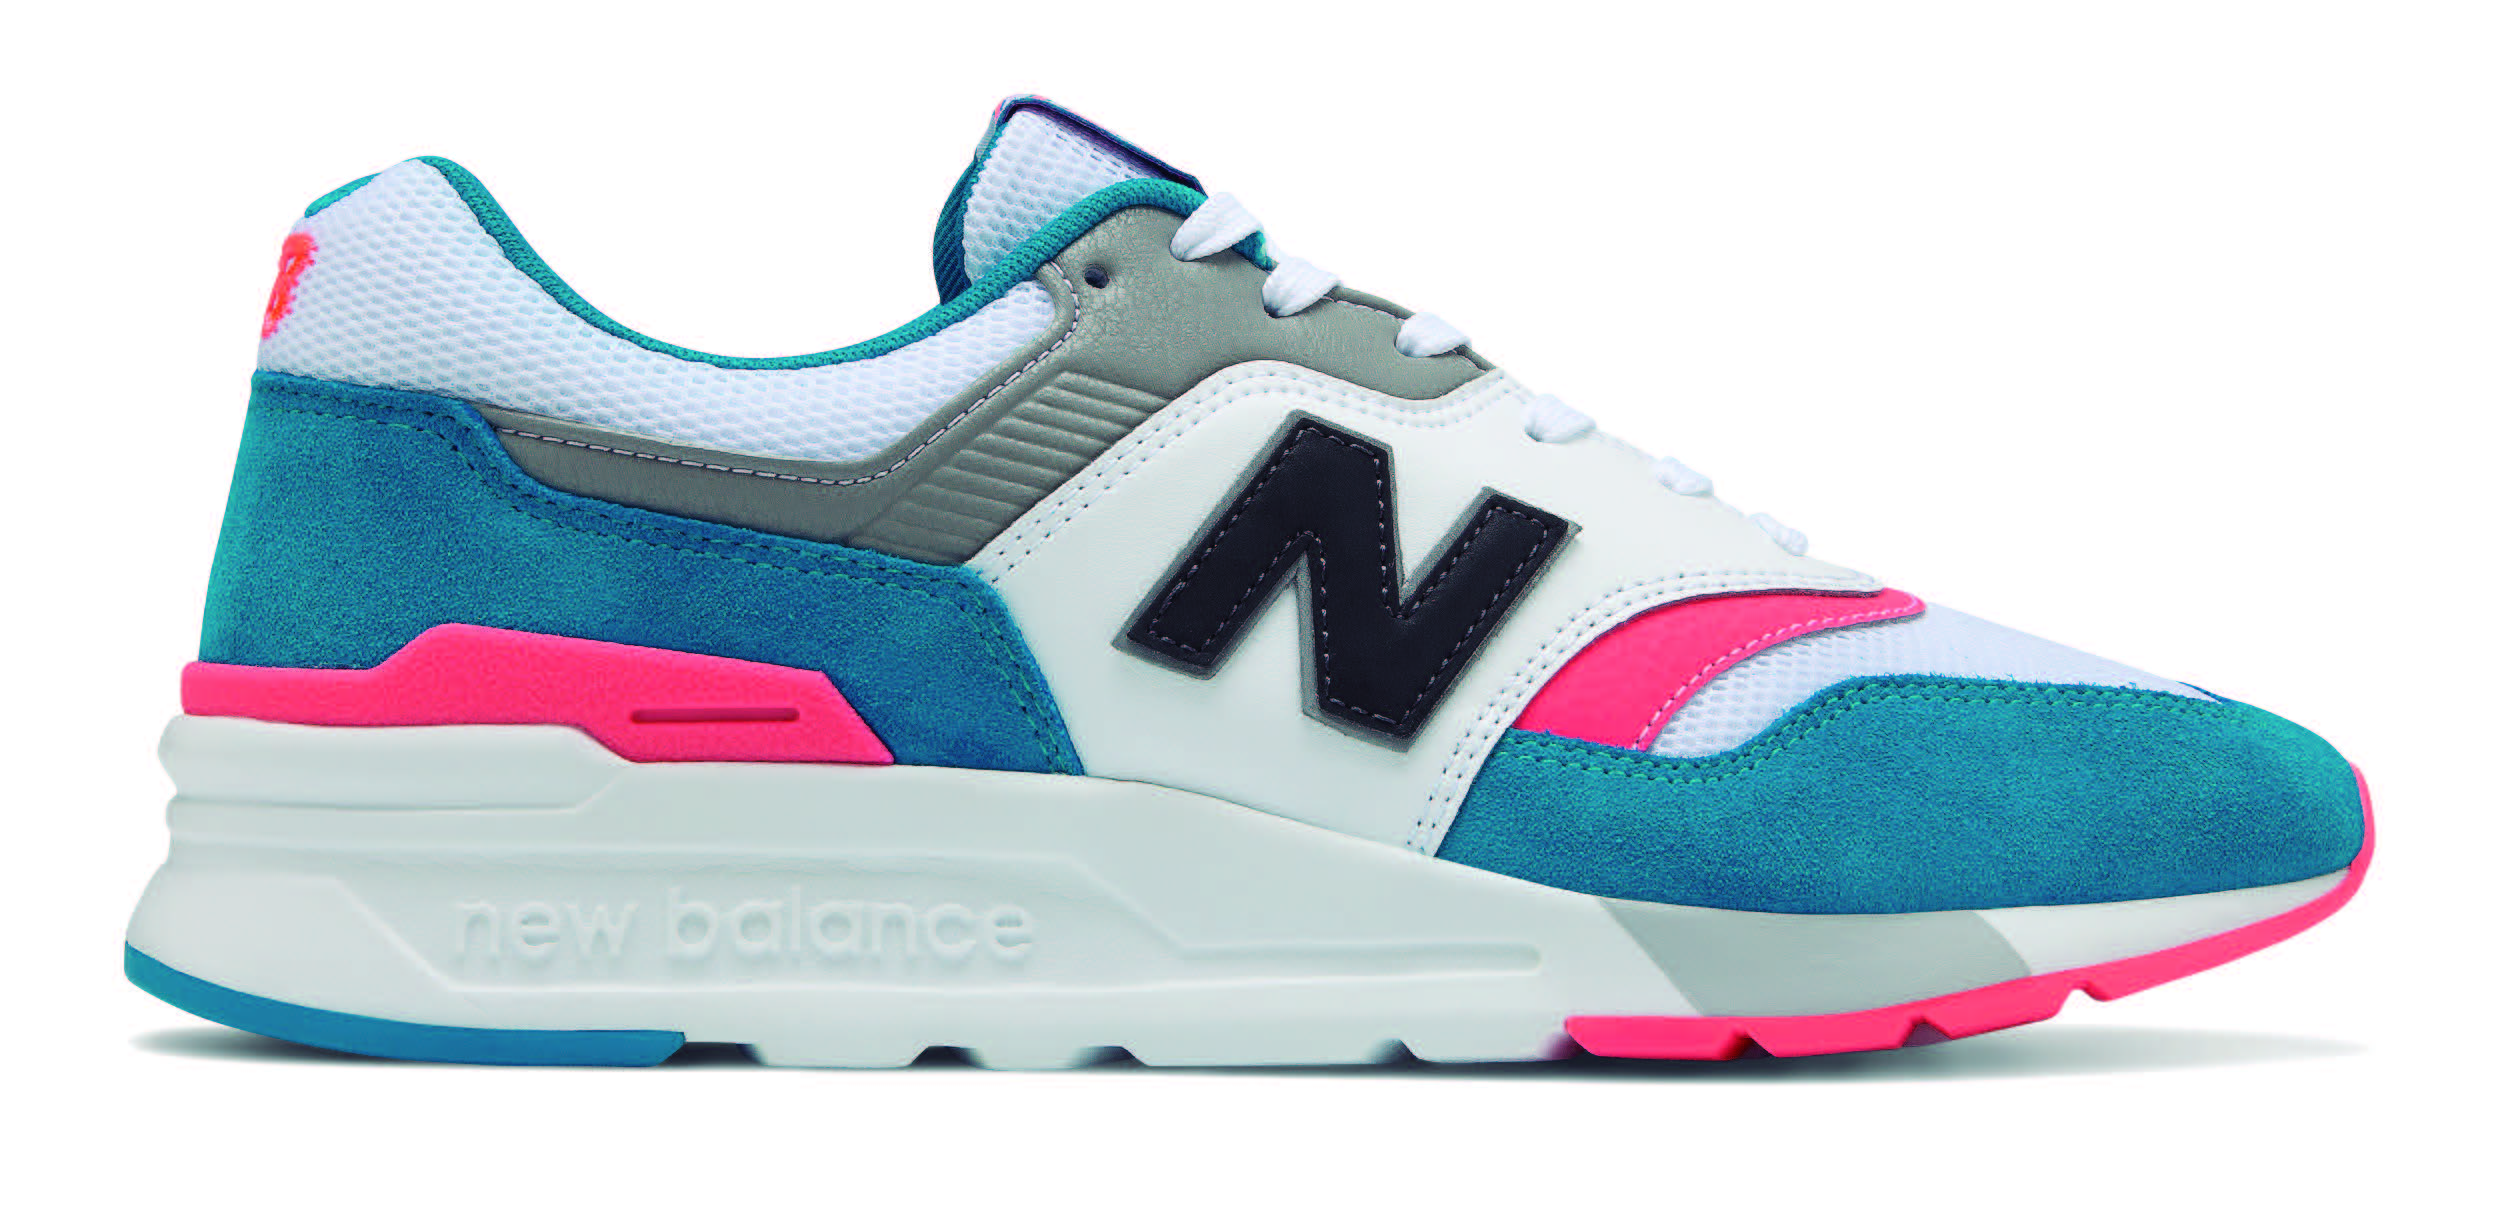 New Balance 997 - Sneakers Magazine